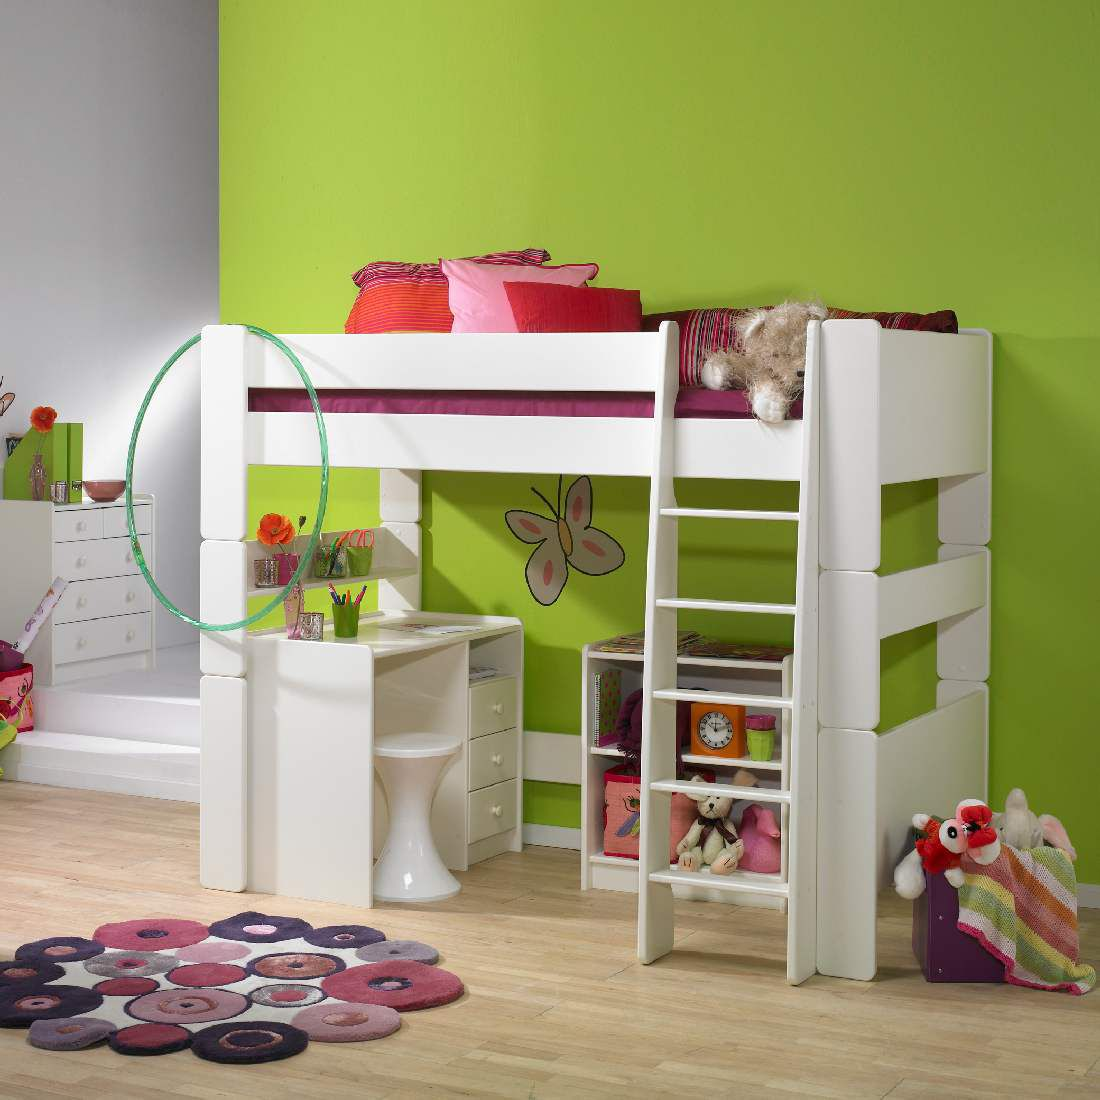 Lit mezzanine Steens for Kids I